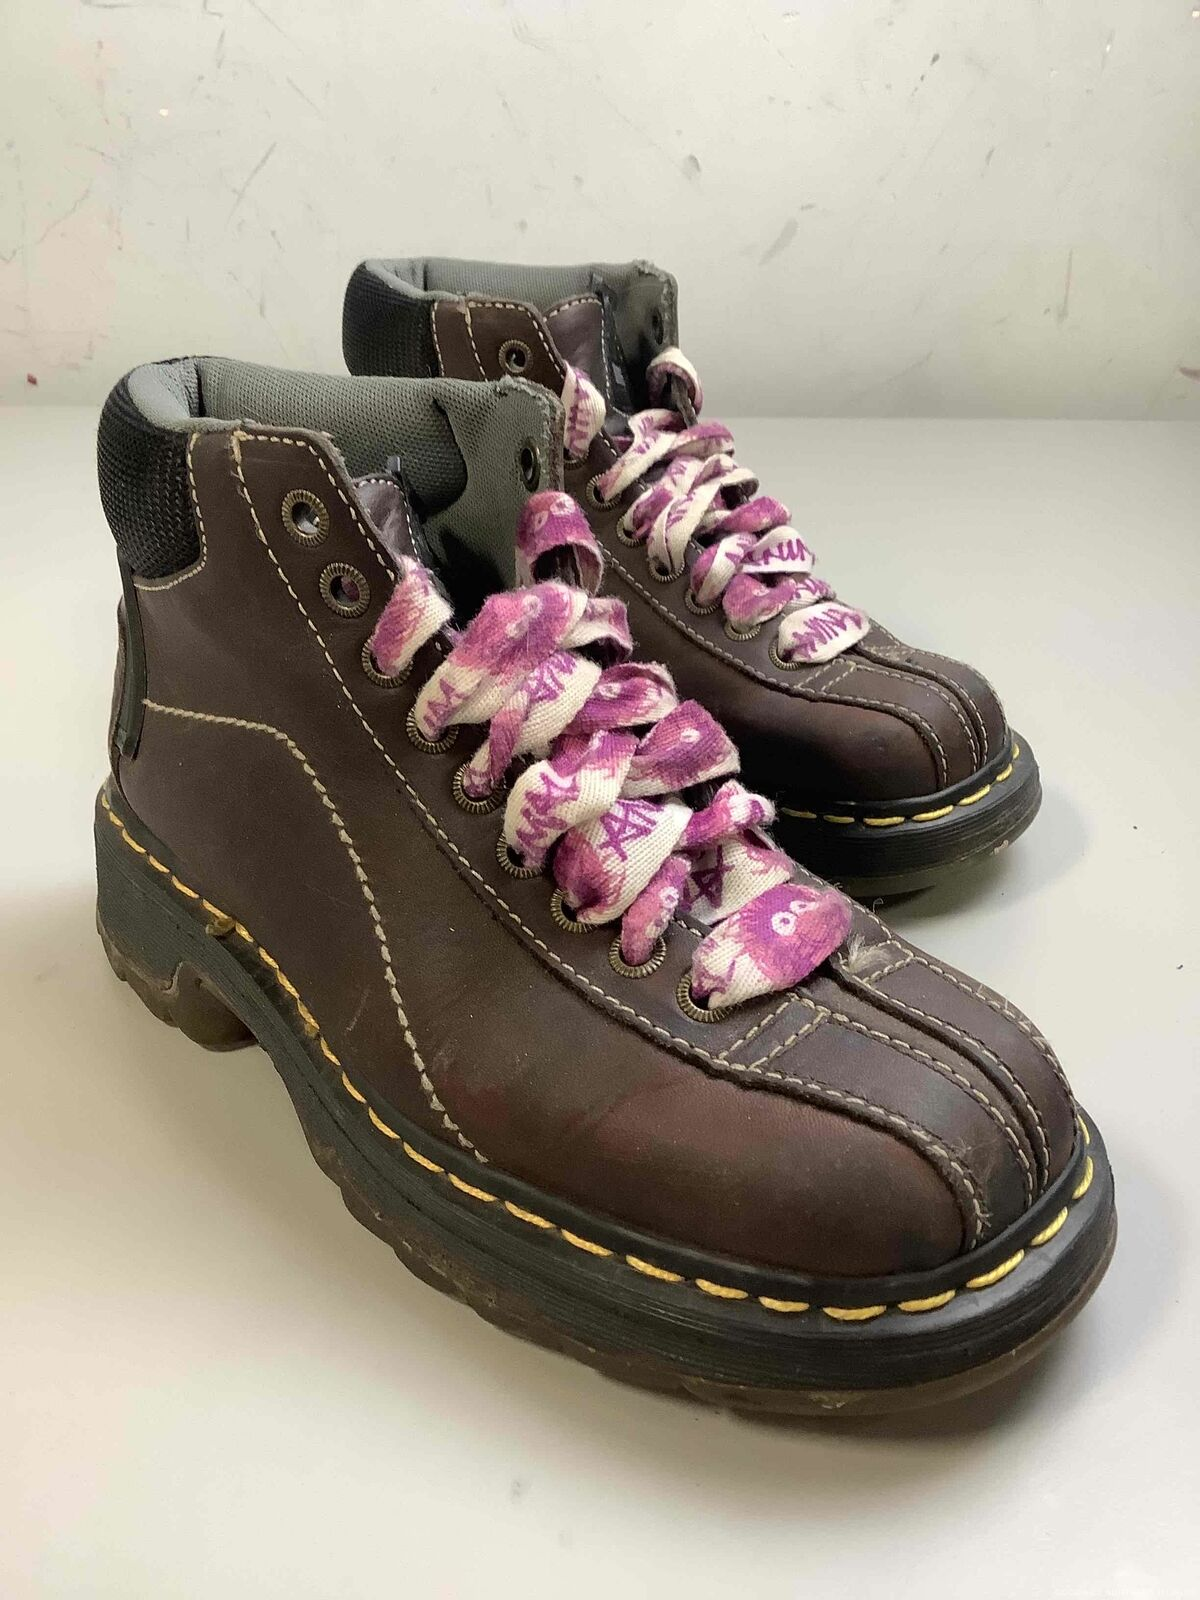 Dr. Martens Work Mens Calamus Non-Metallic the Best Electrical Risk Composite Toe 7-Eye Boot